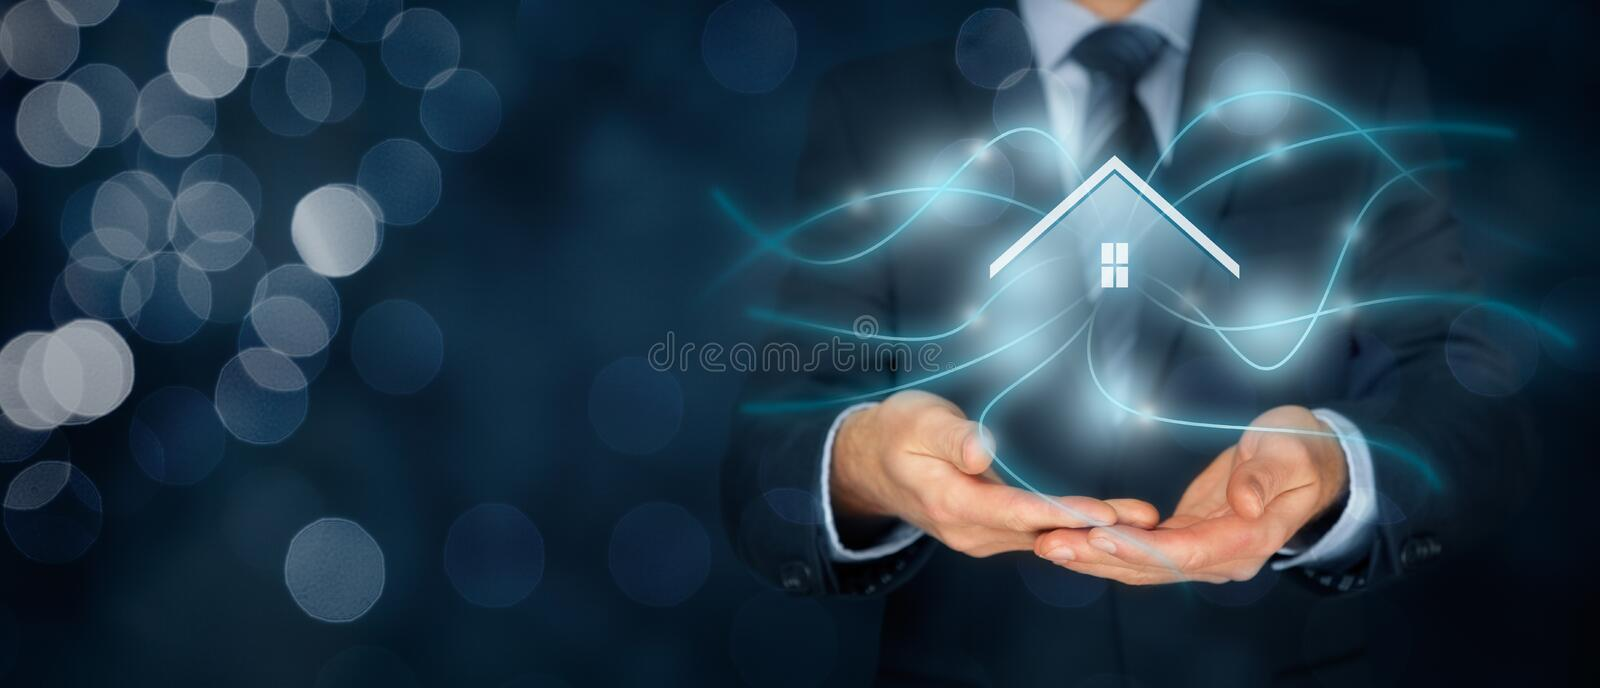 Intelligent house. Smart home and home automation concept. Symbol of the house and wireless communication stock image